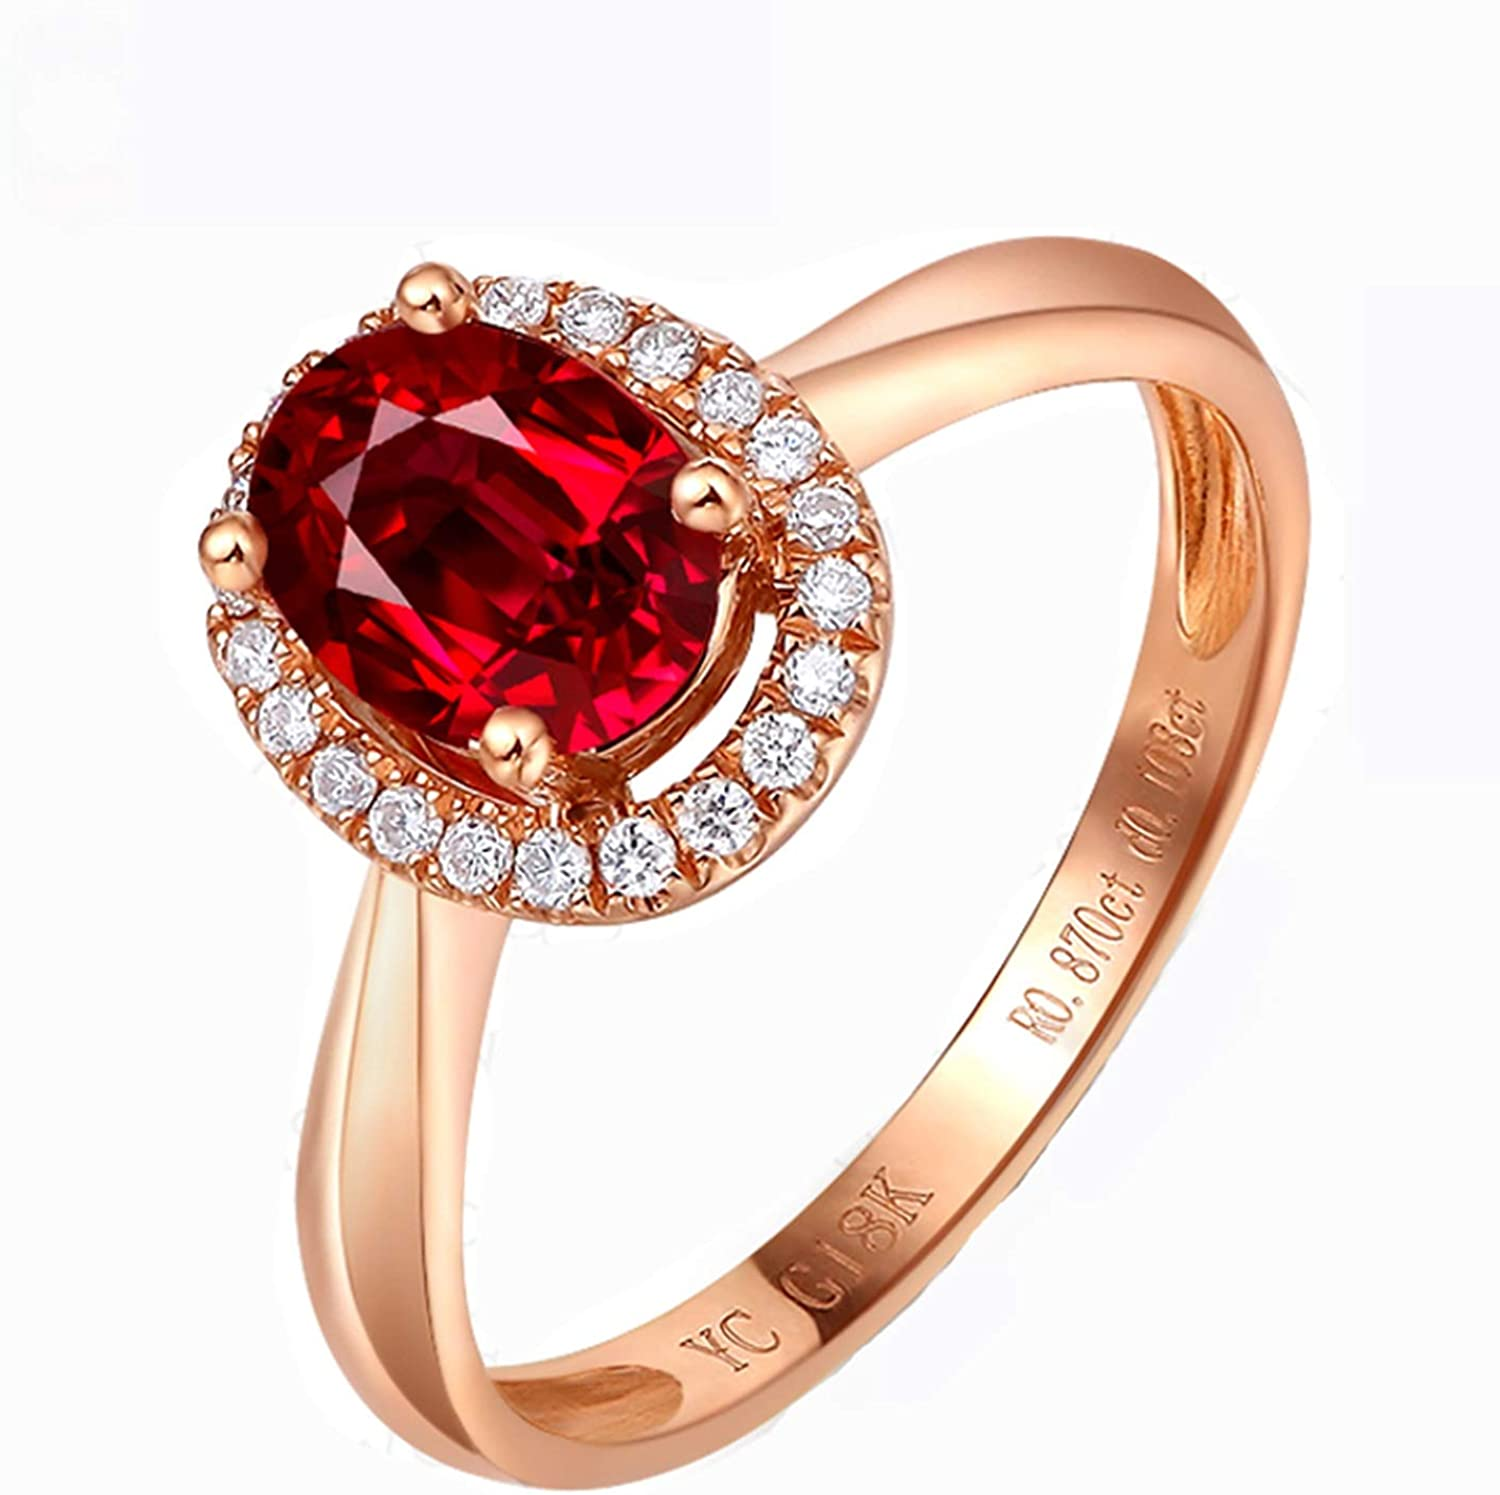 Amazon Com Epinki Women 18k Rose Gold Ring 0 45 1ct Oval Shape Ruby Diamond Ring Fashion Band Rings For Women Jewelry